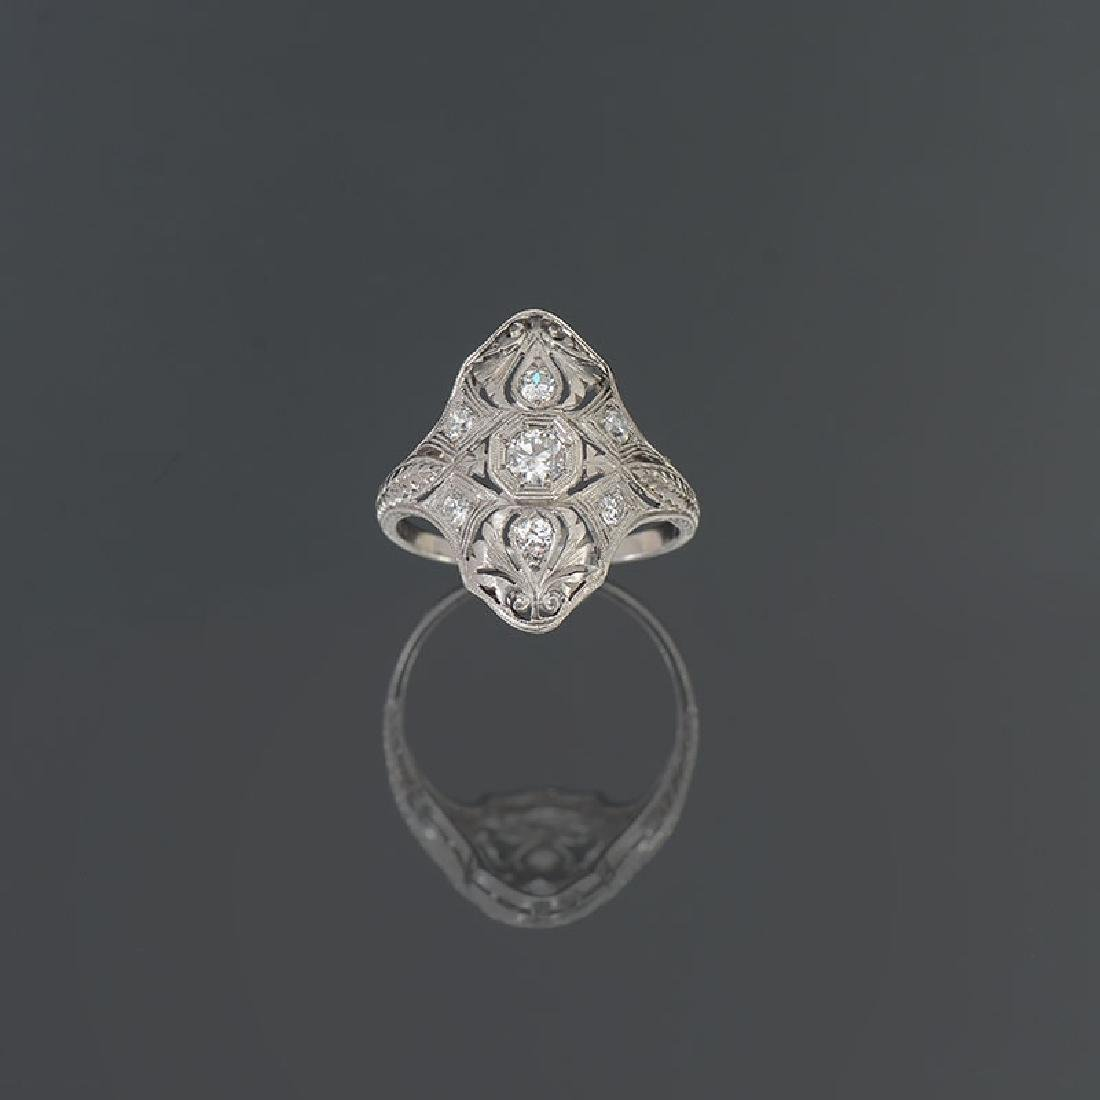 PLATINUM EDWARDIAN DIAMOND DINNER RING